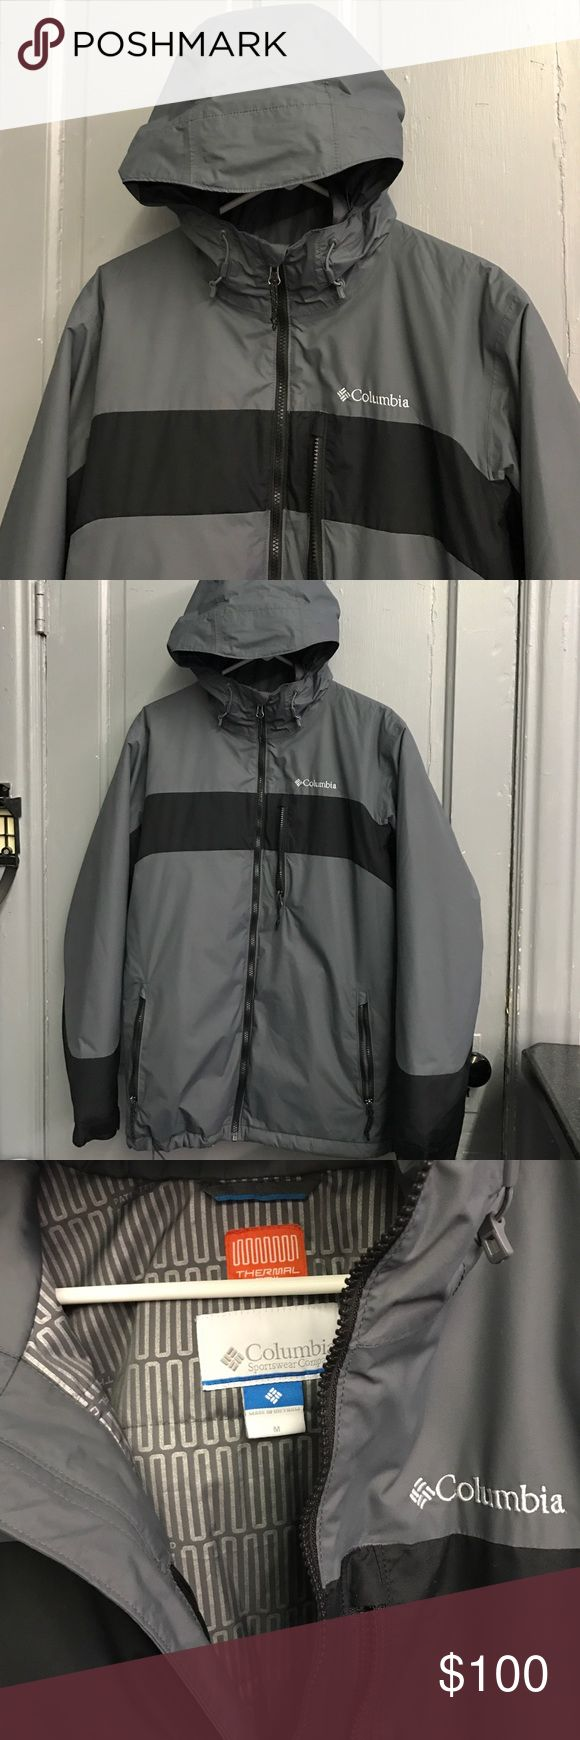 """Men's Medium Columbia Coat LN Thermal Coil This coat is like new to nwot condition. Thermal Coil medium men's from Columbia in sm gray and black.  Zippers on all pockets inside and out as well as adjustable bottom. 48"""" chest and 19"""" from underarm to bottom. Columbia Jackets & Coats Ski & Snowboard"""